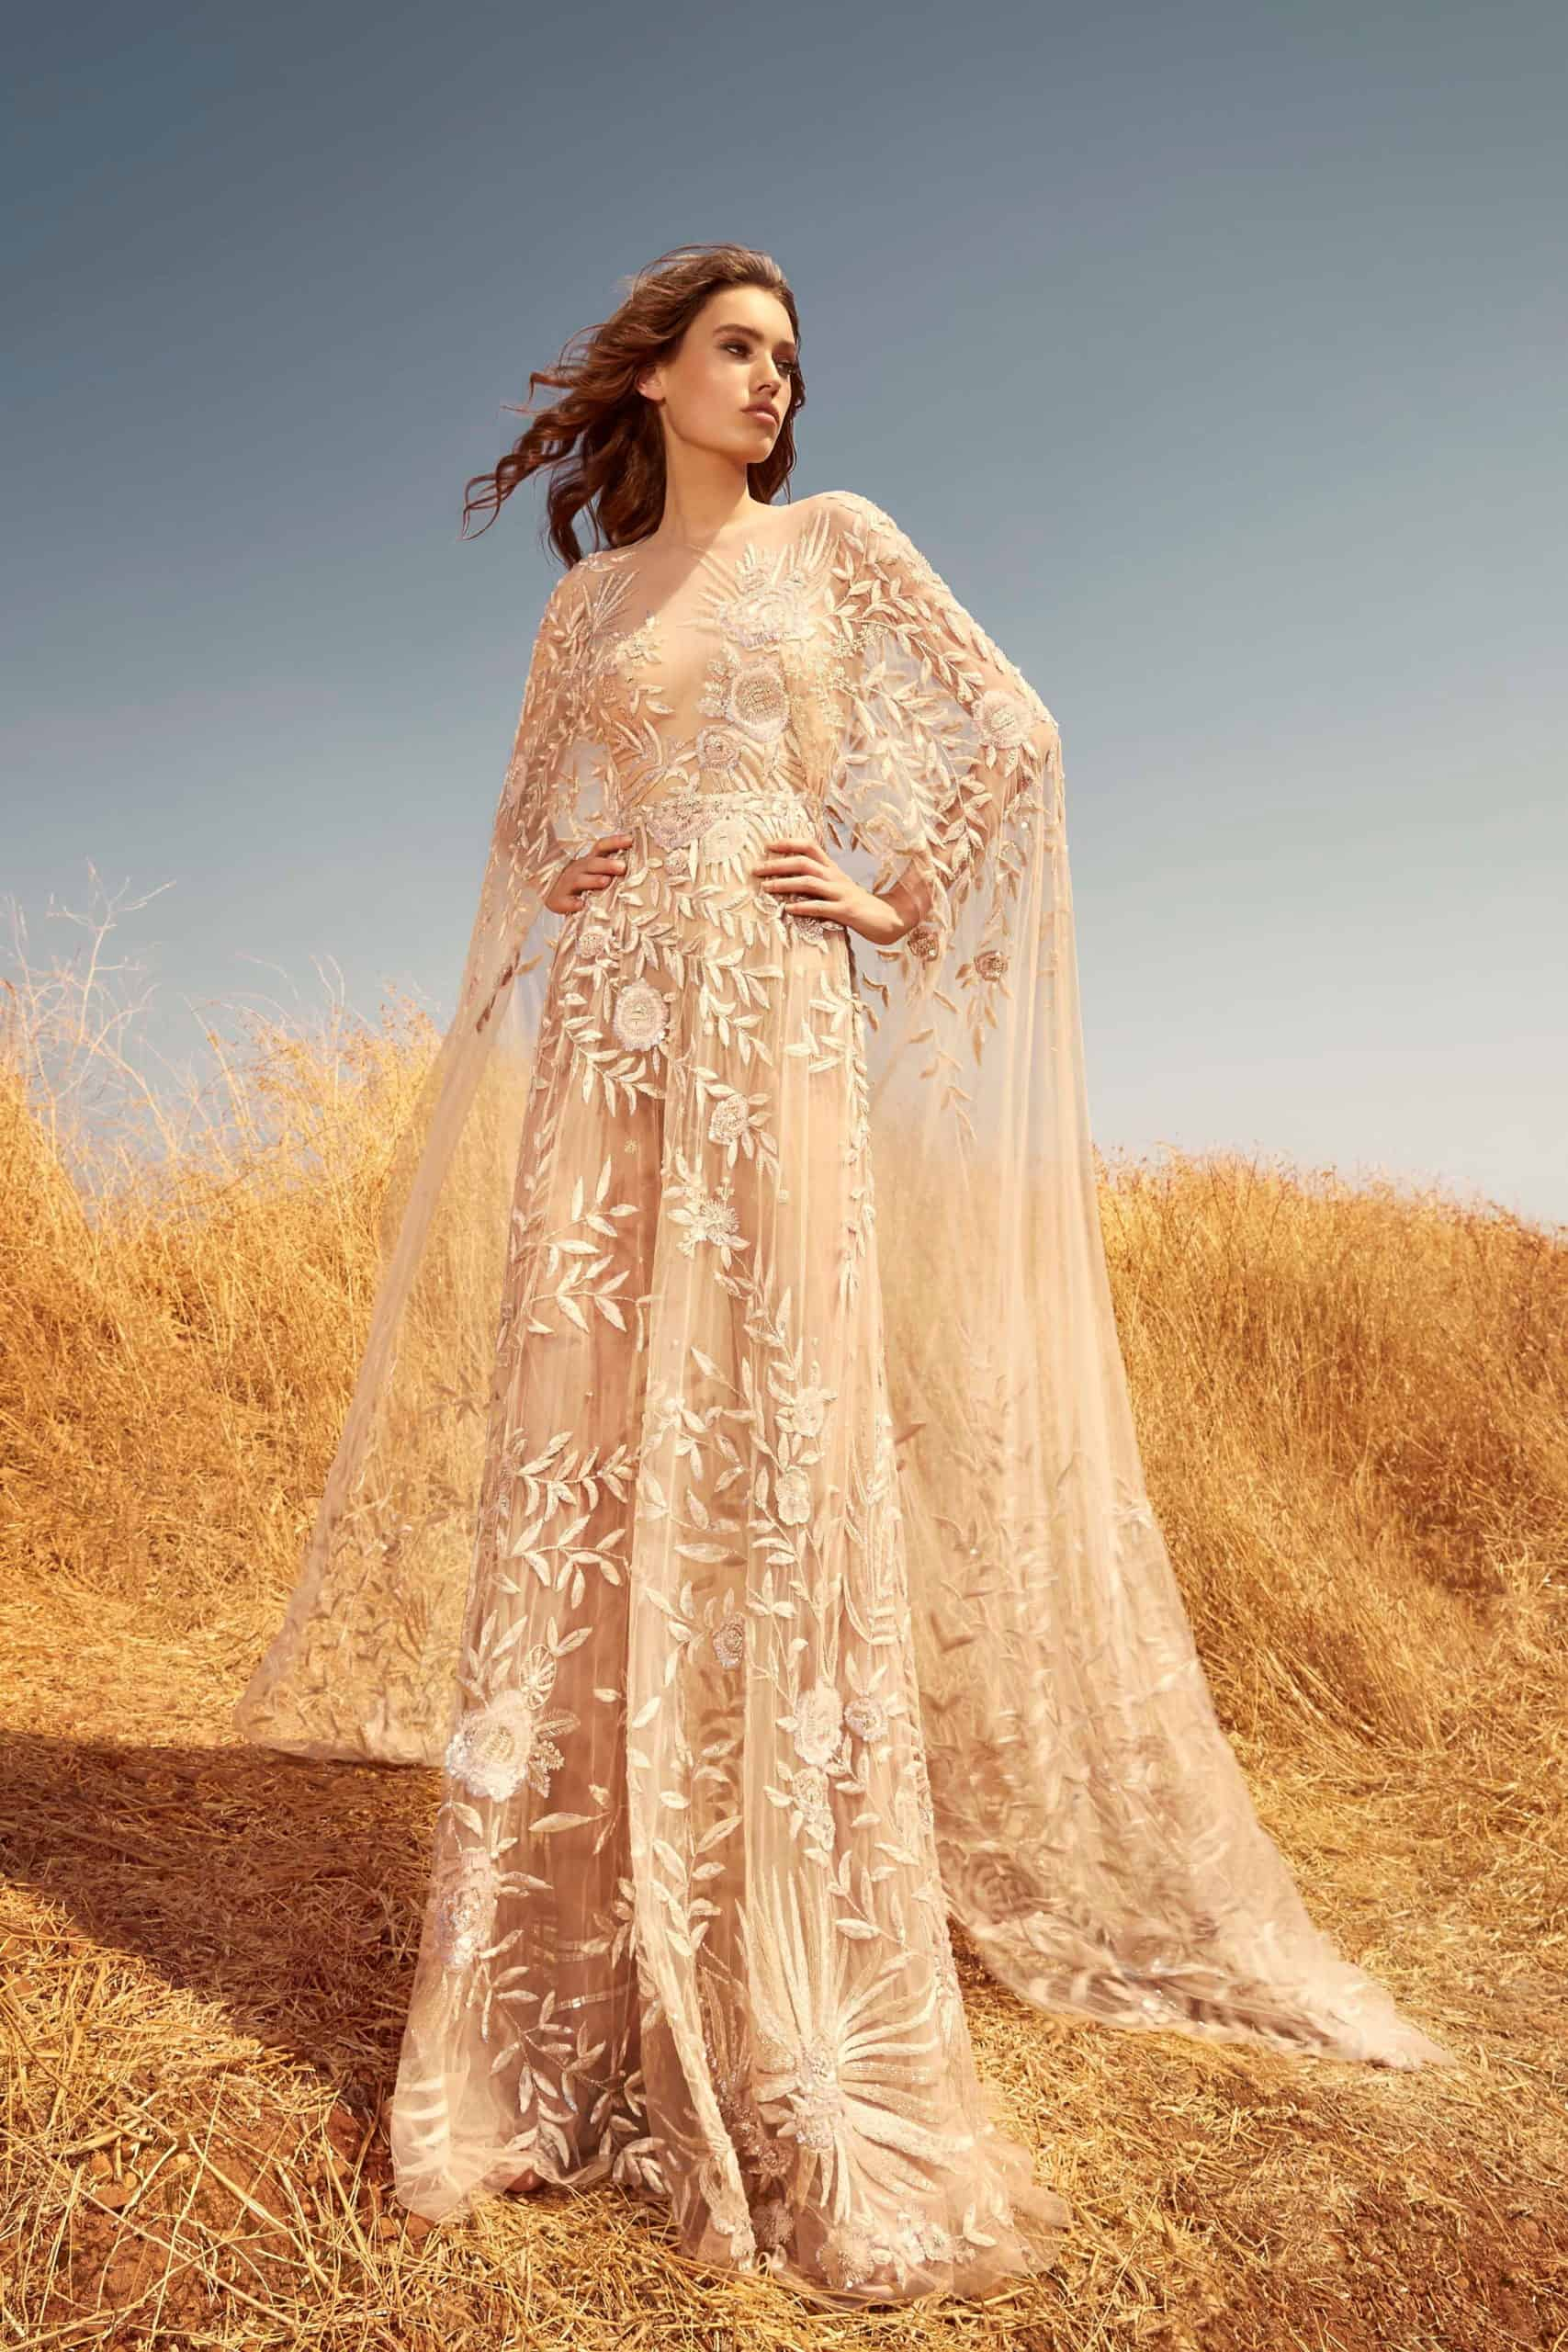 tulle wedding dress with embossed flowers and cape by Zuhair Murad